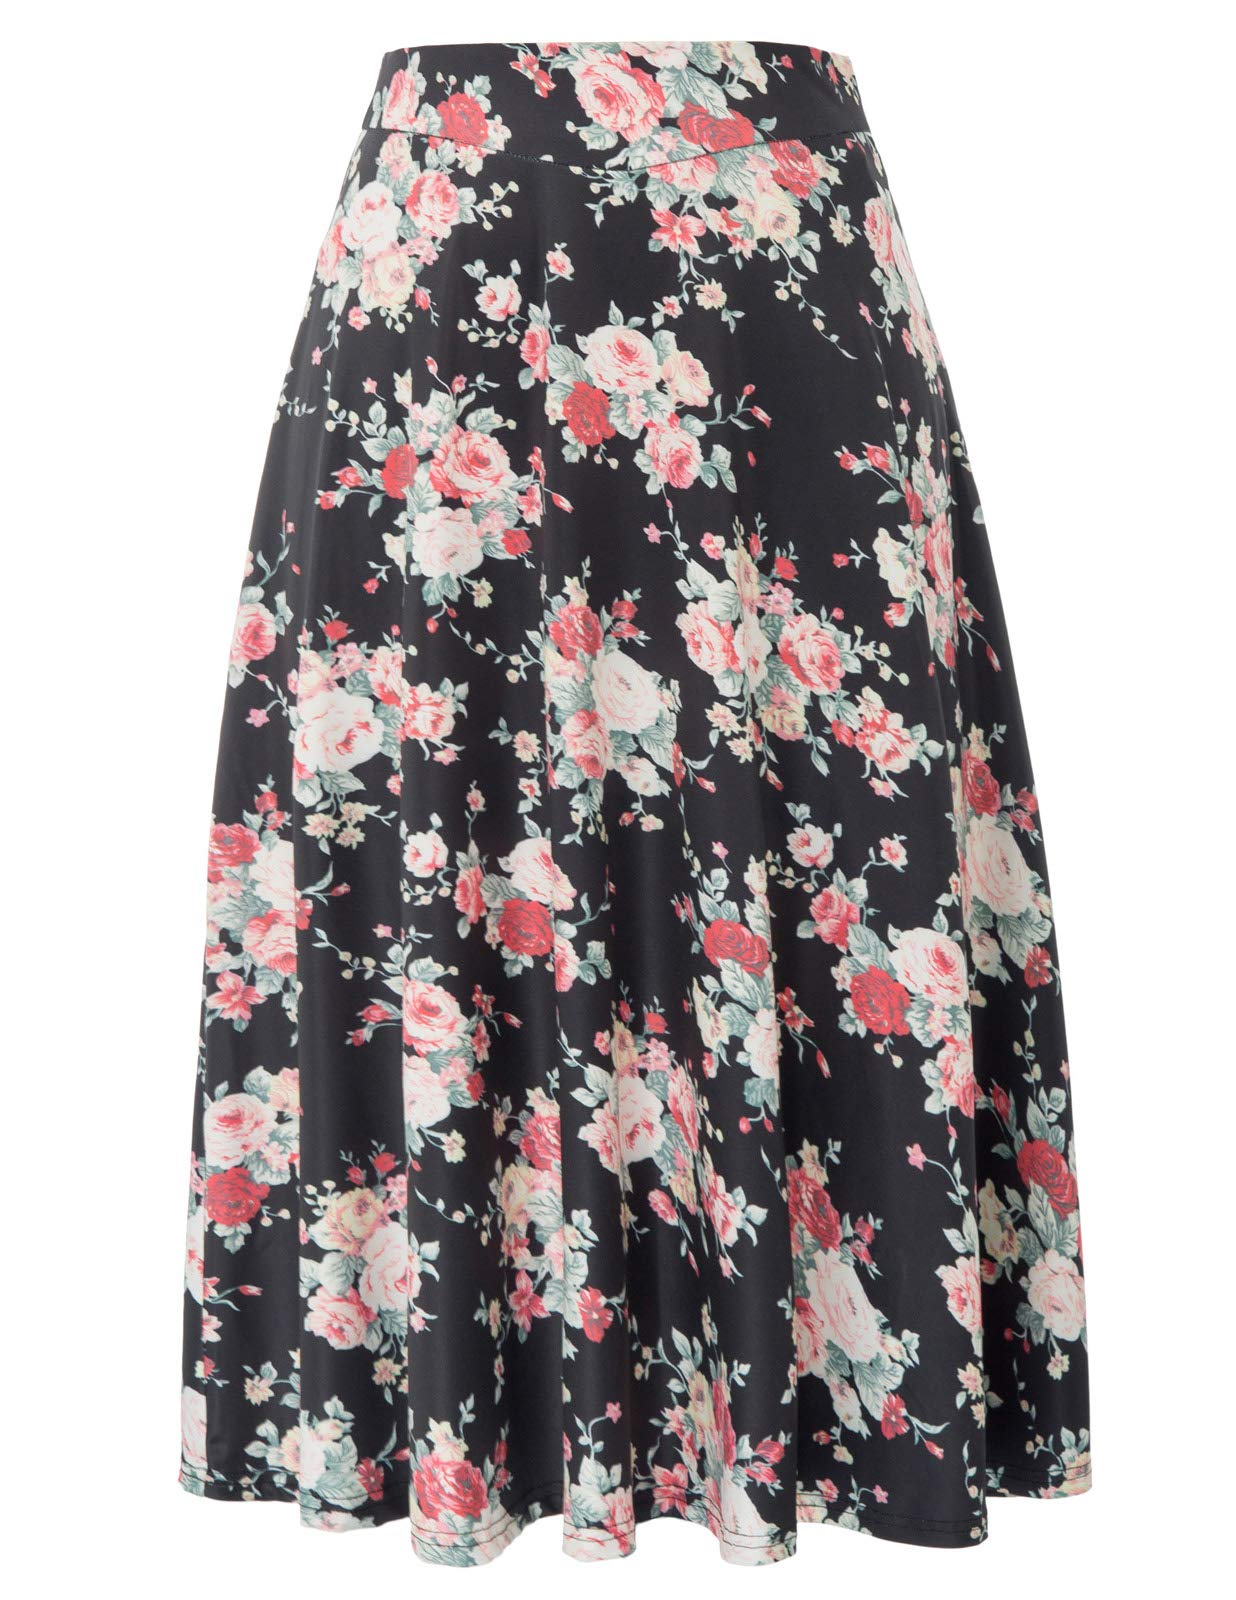 Women's Highwaist Flowing Swing A-Line Skirt Midi Length(S,Black-Flower)